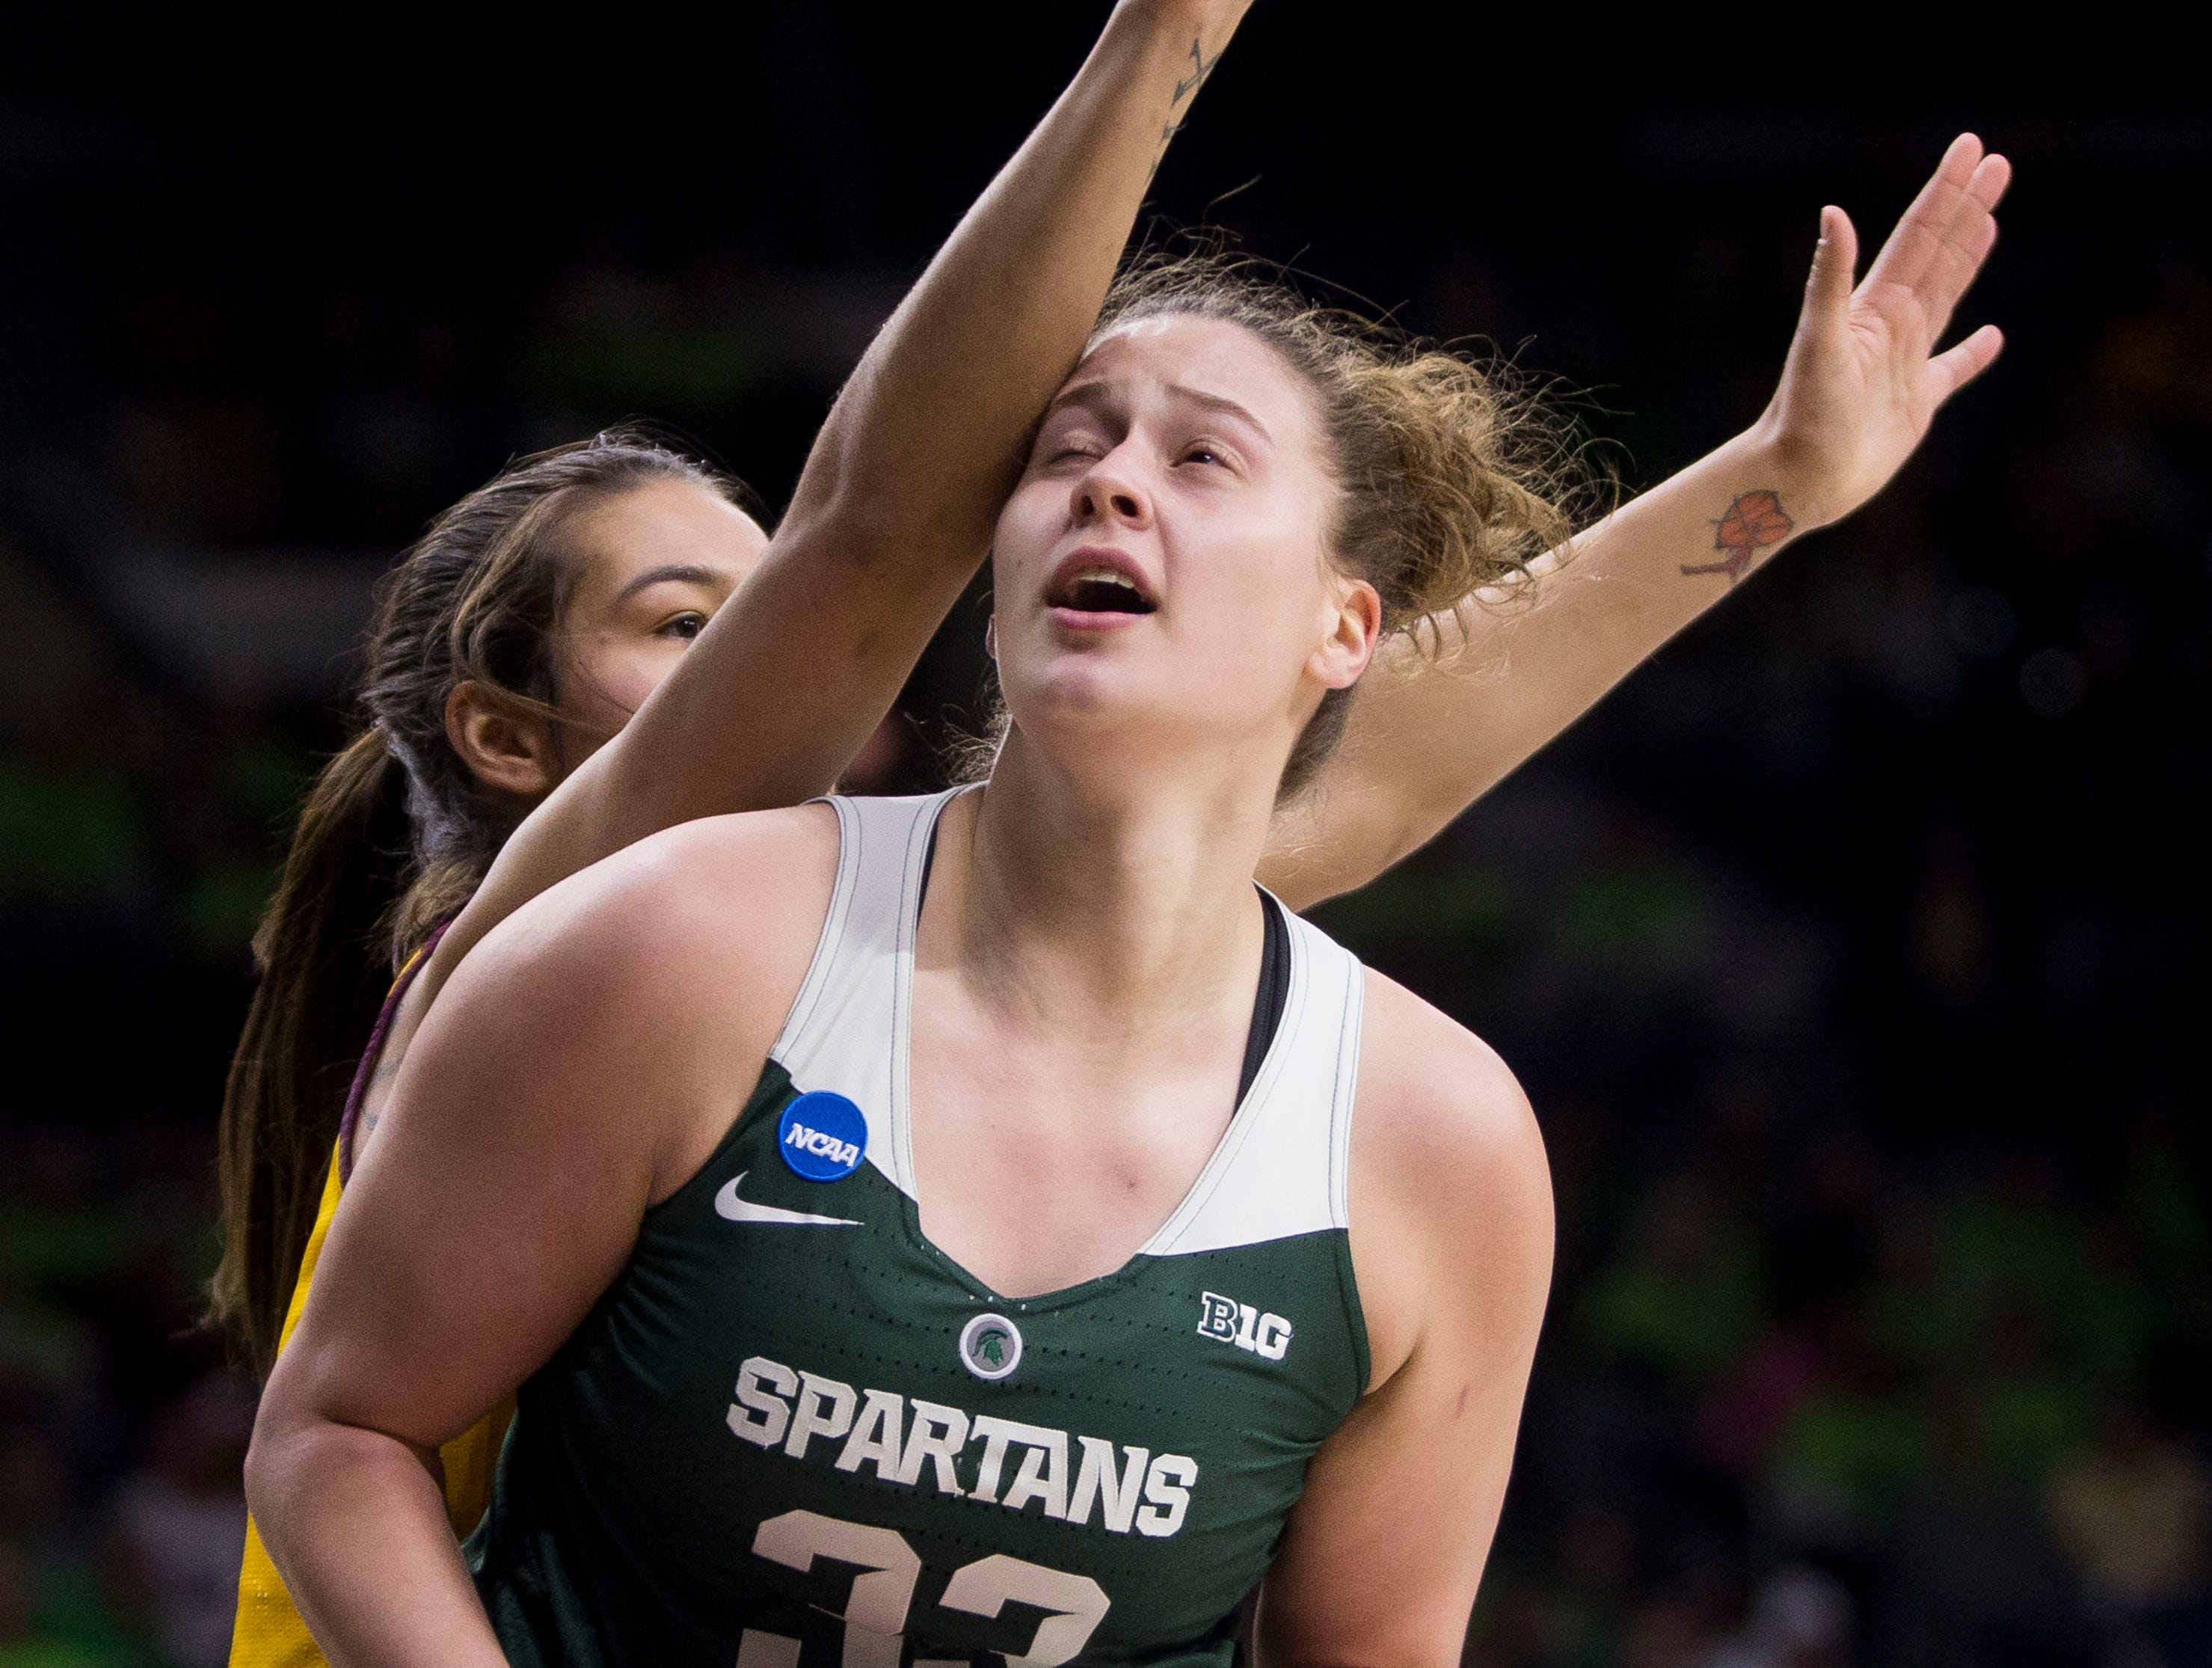 Michigan State's Jenna Allen (33) looks for a shot with pressure from Central Michigan's Reyna Frost during a first-round game in the NCAA women's college basketball tournament in South Bend, Ind., Saturday, March 23, 2019.